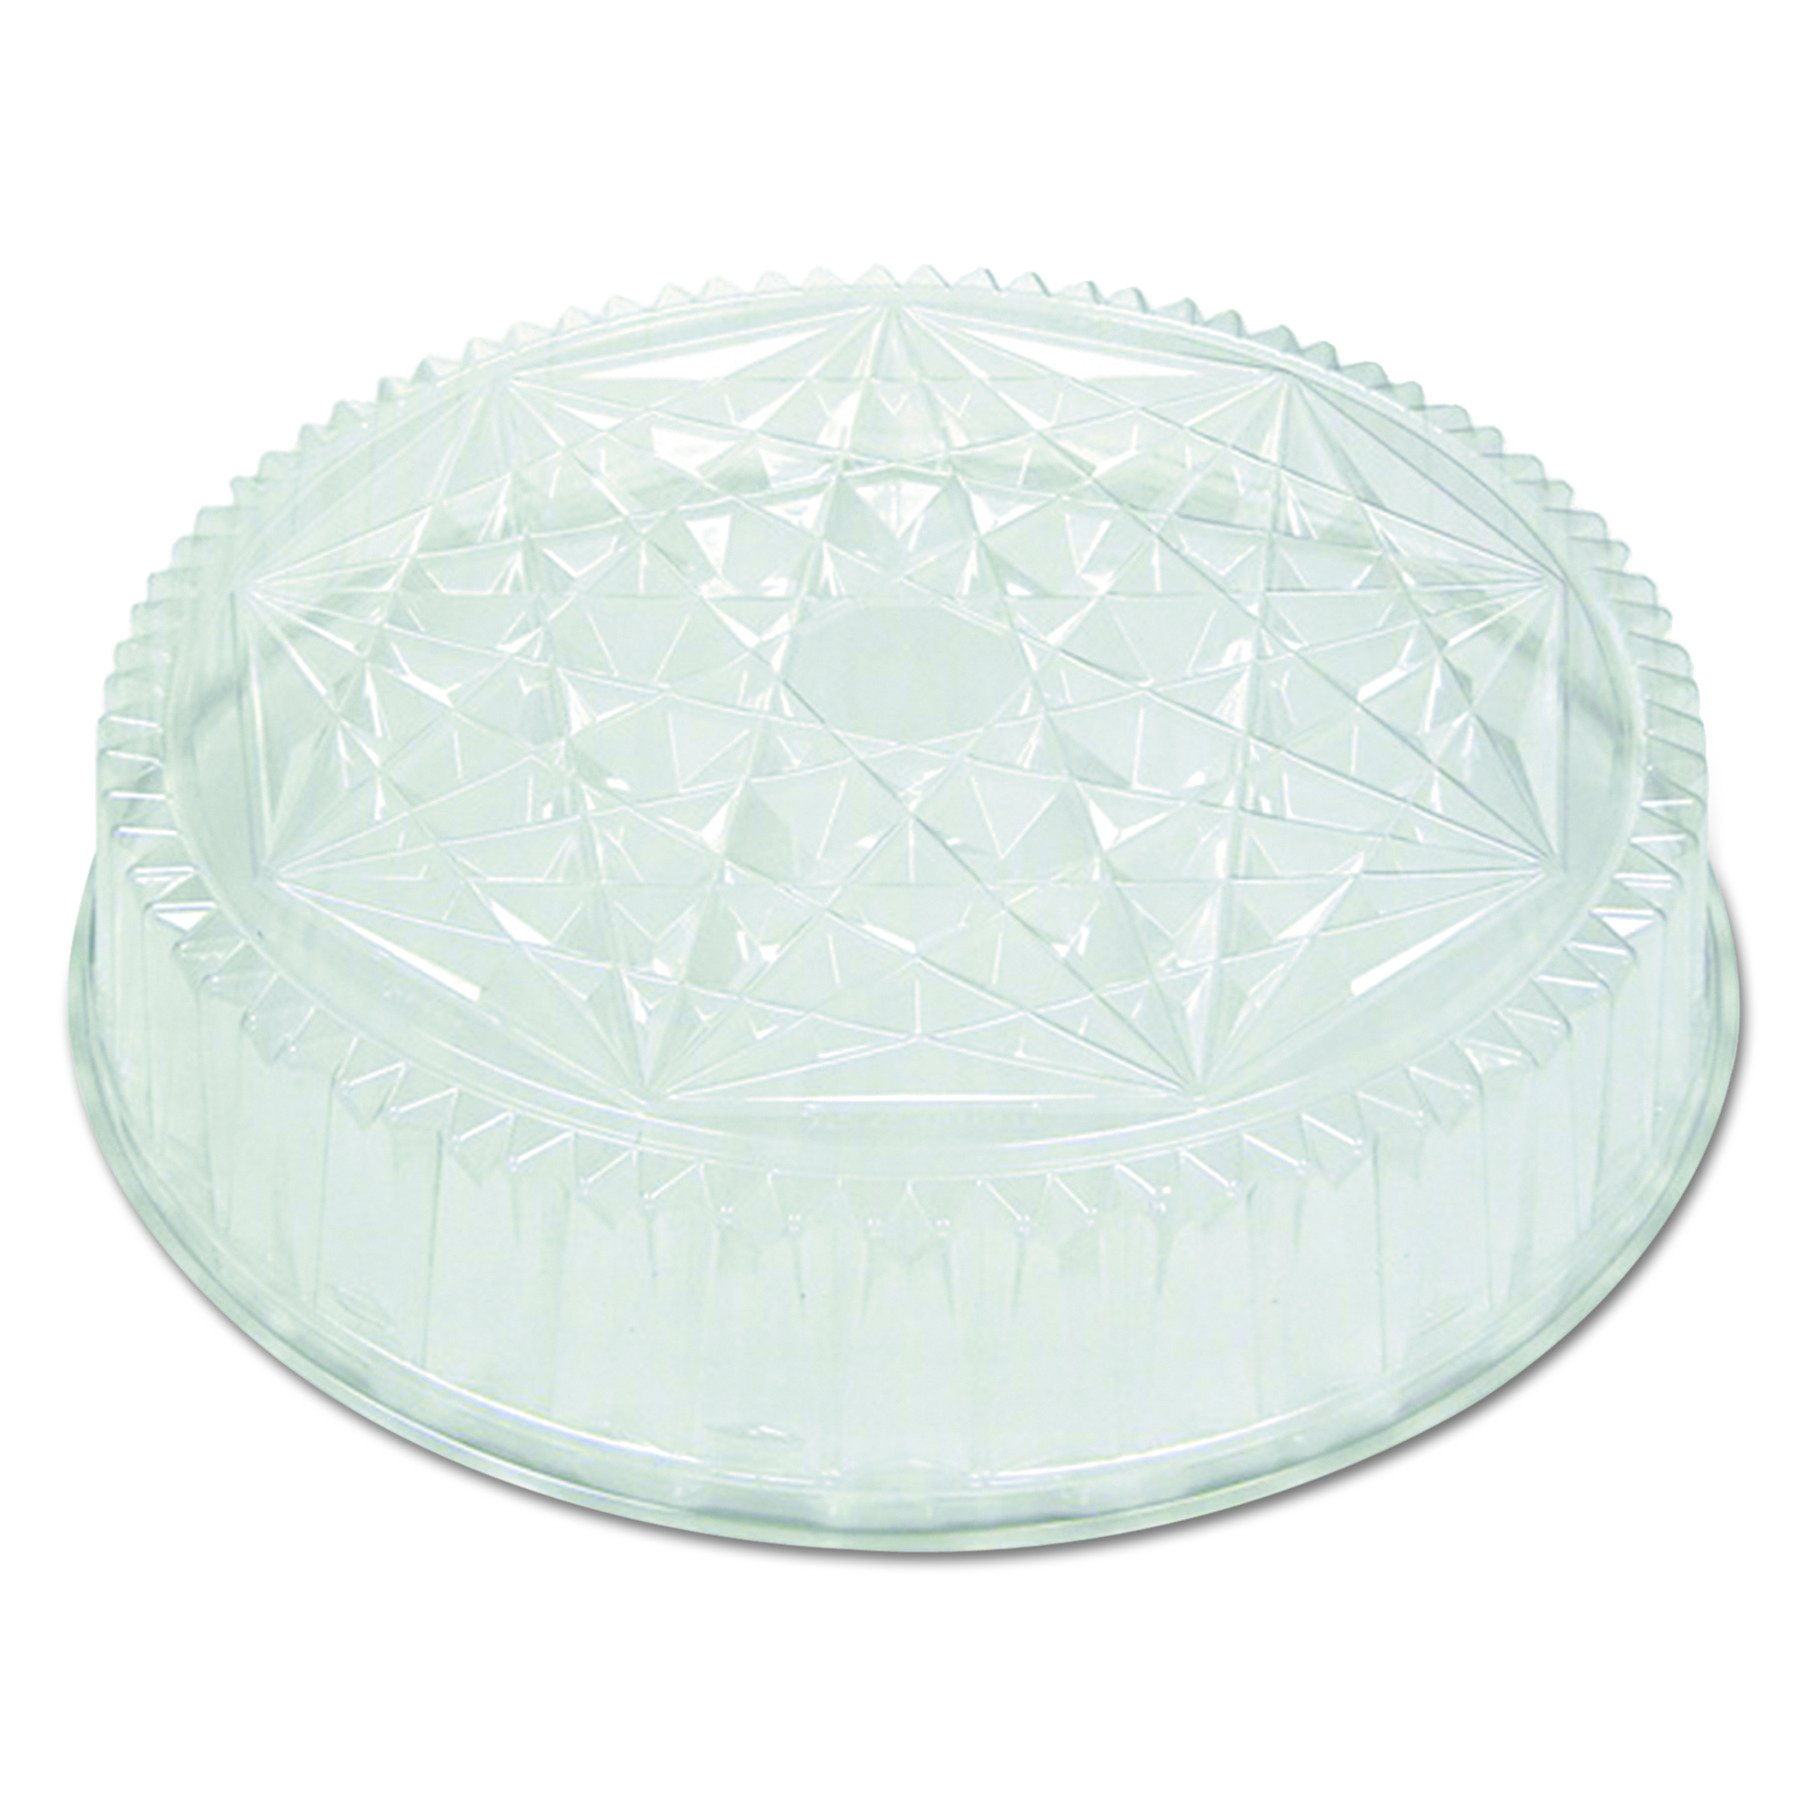 Pactiv P4416 Round CaterWare Dome-Style Food Container Lids, 1-Comp, Clear, 16 dia (Case of 50)